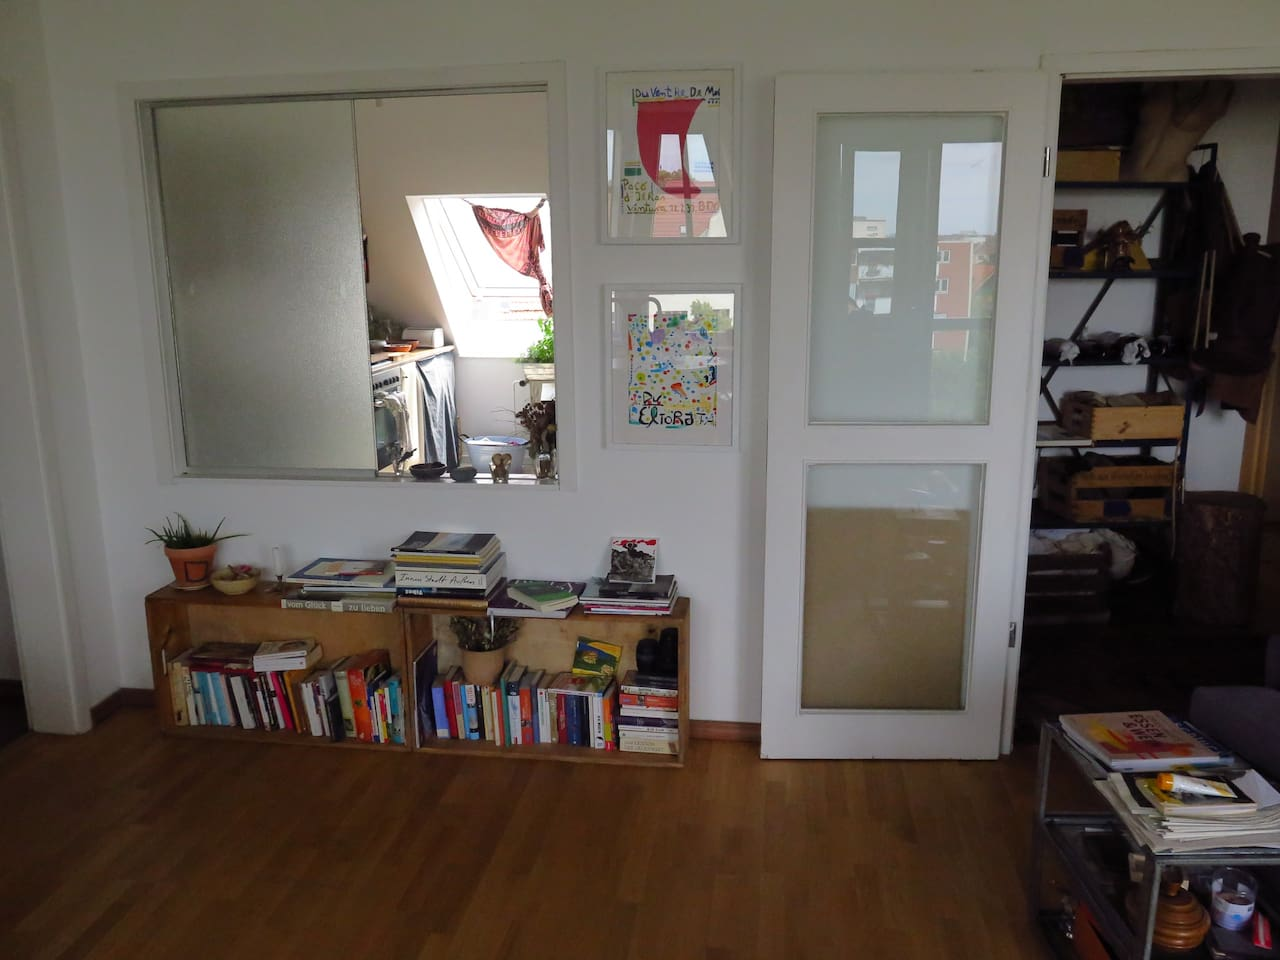 View from living room into kitchen